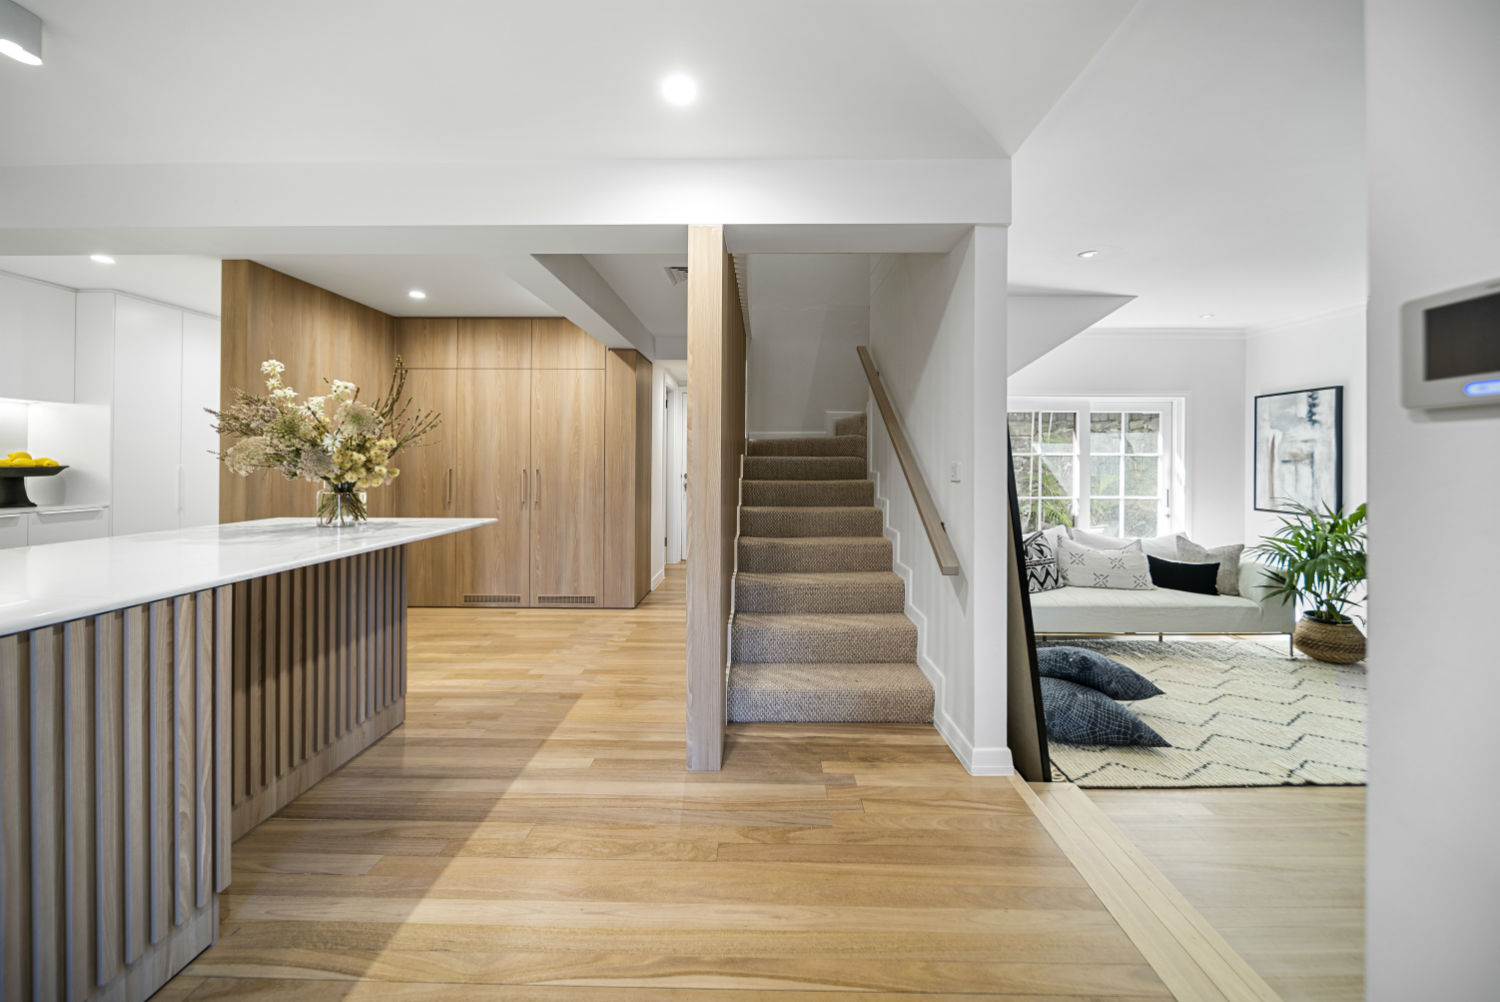 Carrera By Design - Kitchen and Stairs